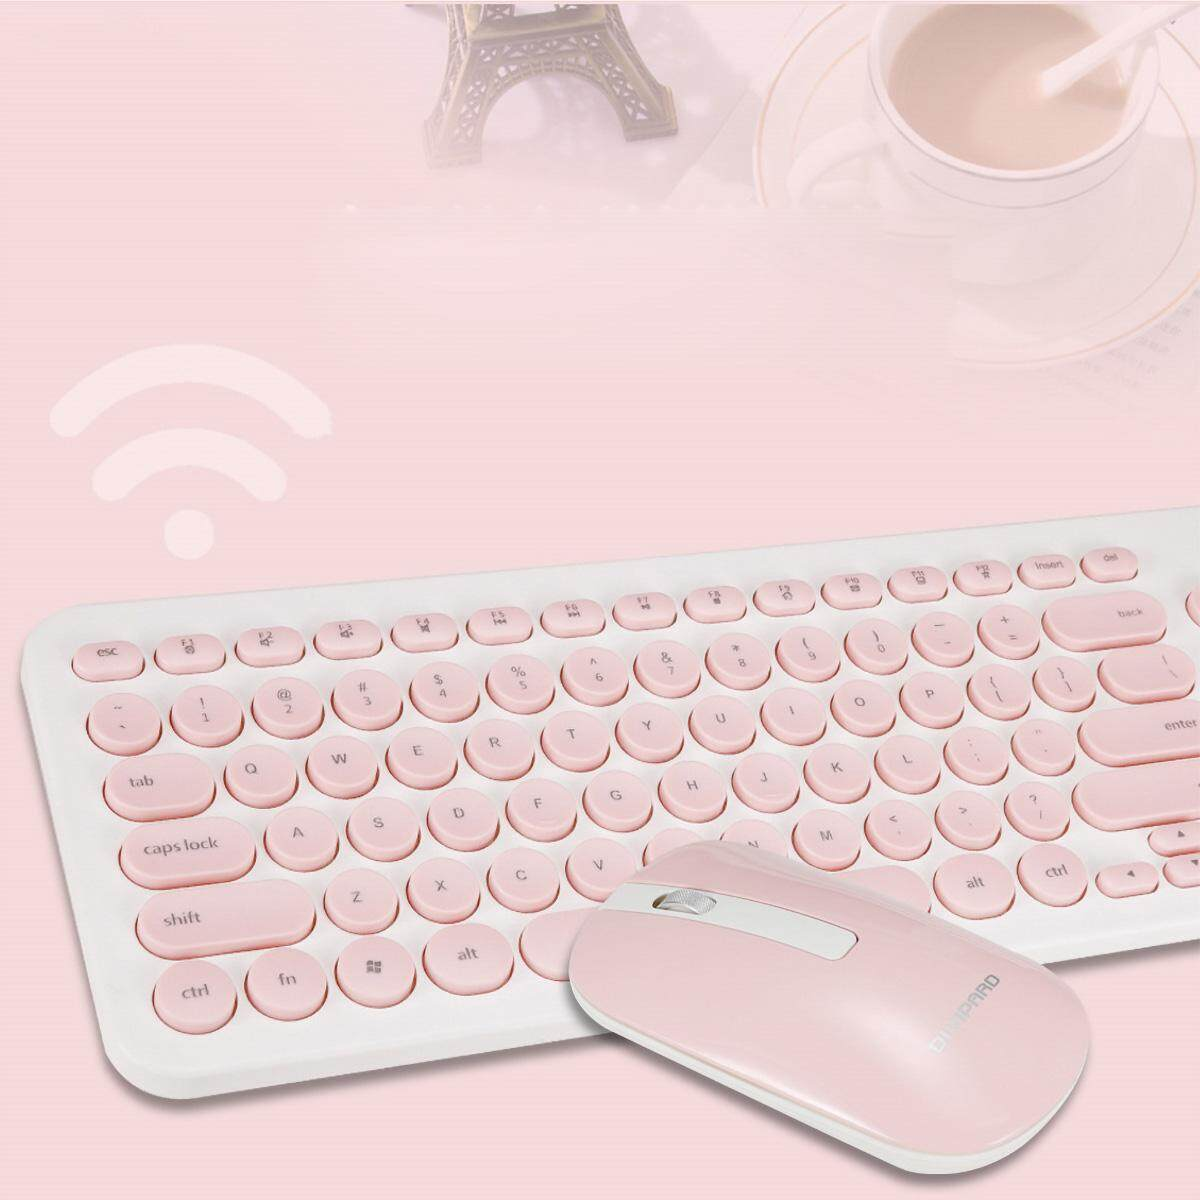 2.4G Wireless Gaming Keyboard+Mouse For PC Computer Laptop Pink